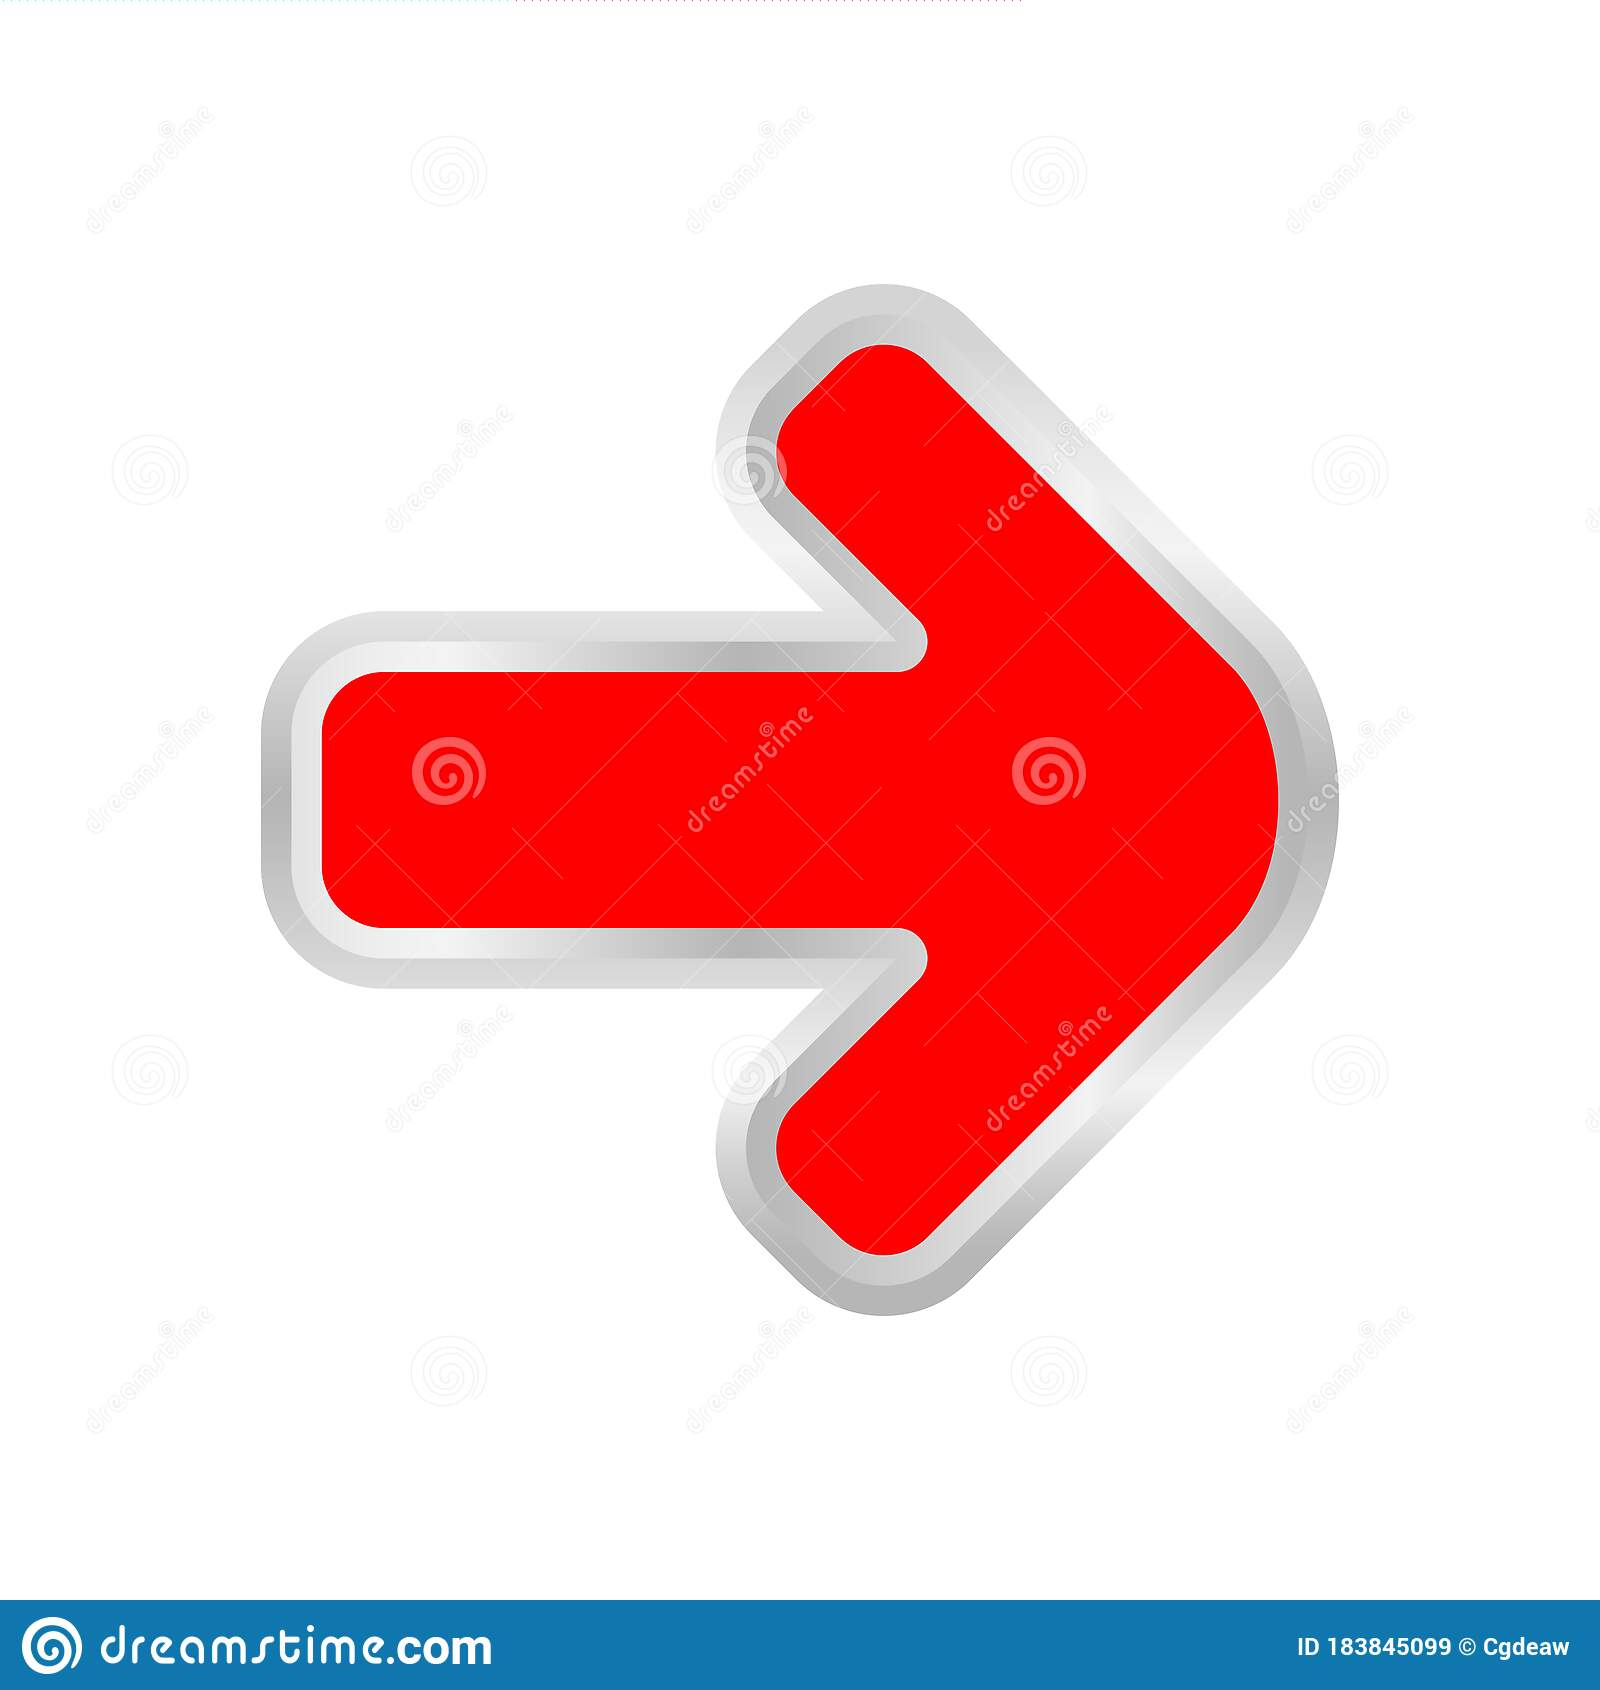 Red Arrow Pointing Right Isolated On White Clip Art Red Arrow Icon Pointing To Right 3d Arrow Symbol Indicates Red Direction Stock Vector Illustration Of Colorful Information 183845099